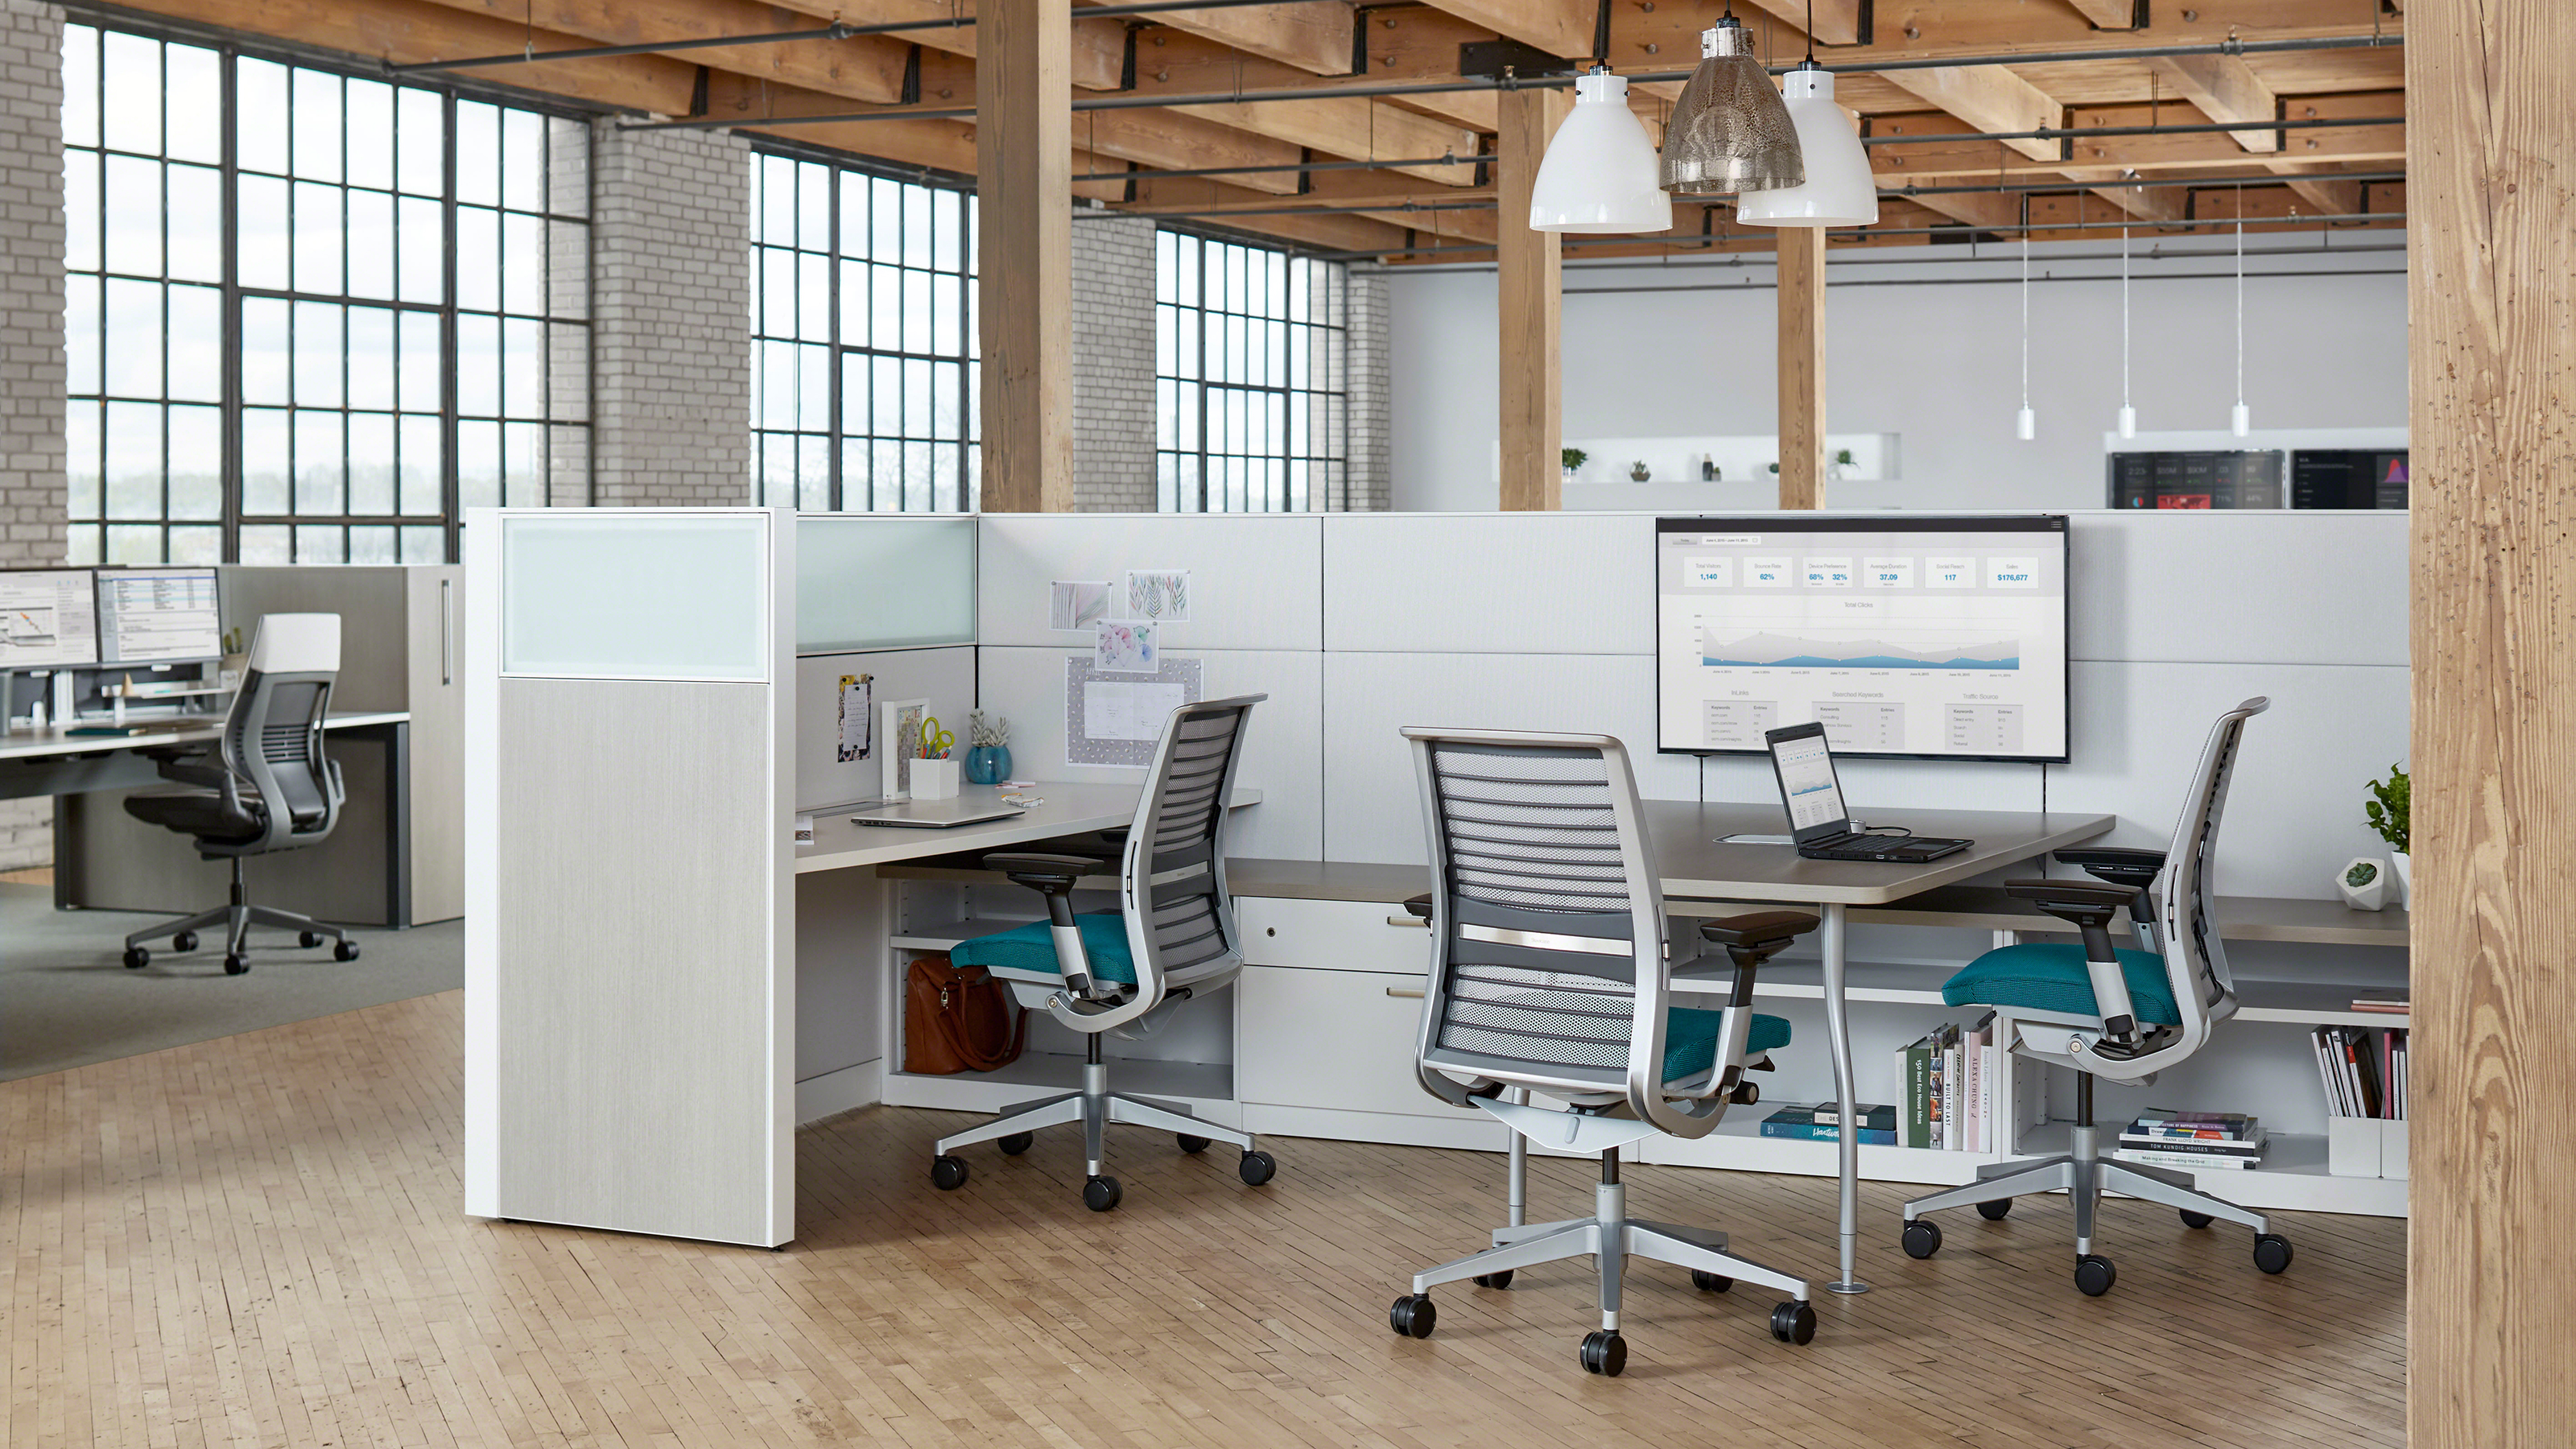 Wondrous Three Options For Getting Rid Of Used Office Furniture Home Interior And Landscaping Analalmasignezvosmurscom